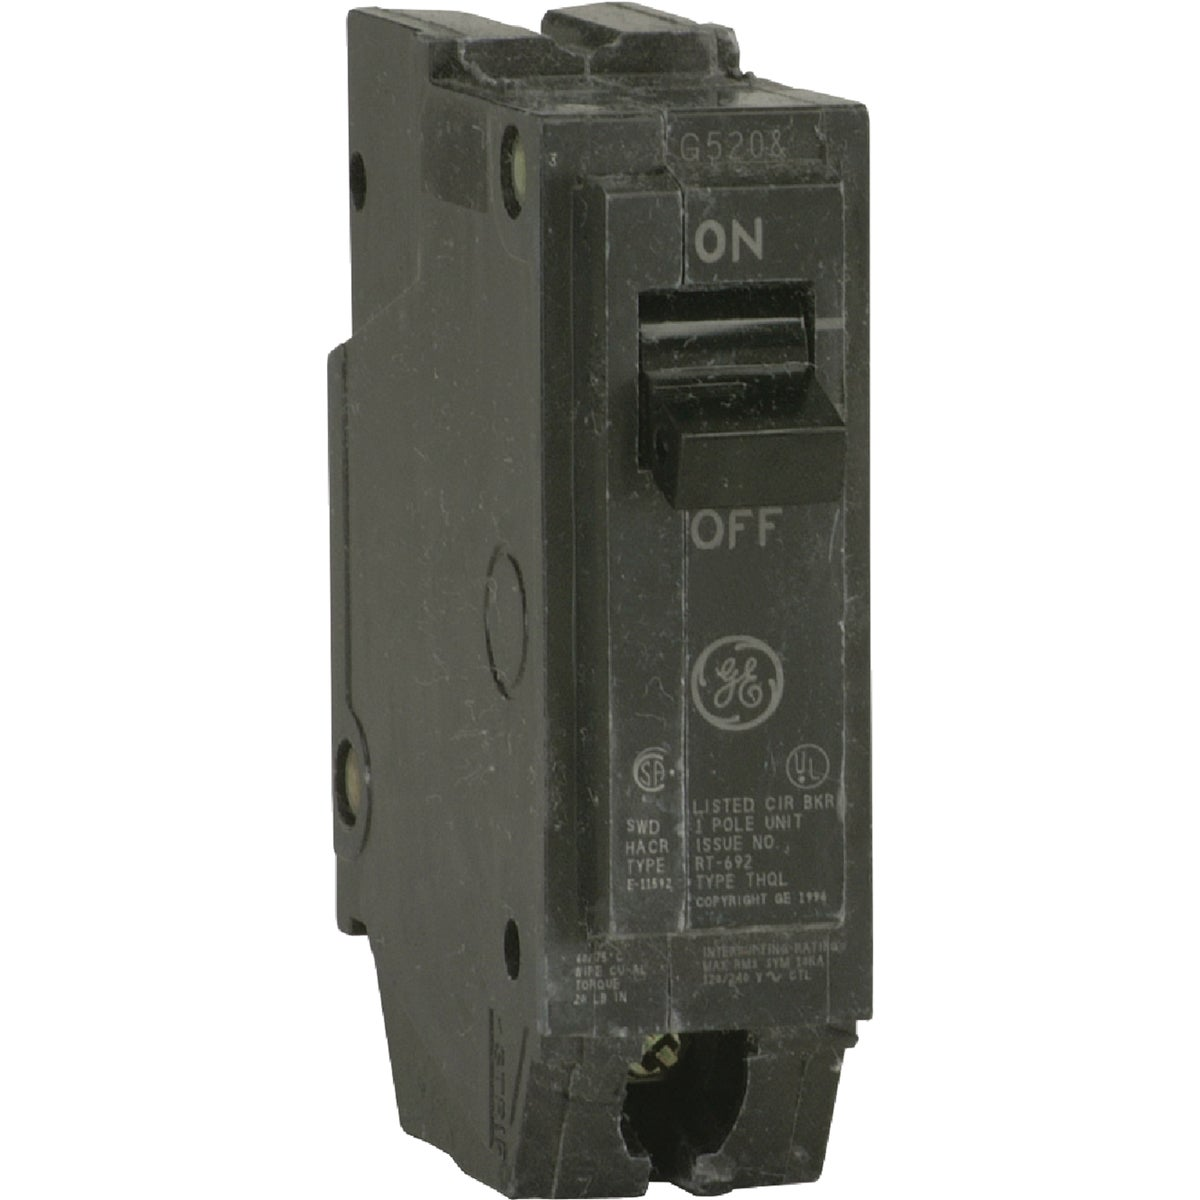 50A SP CIRCUIT BREAKER - THQL1150 by G E Industrial